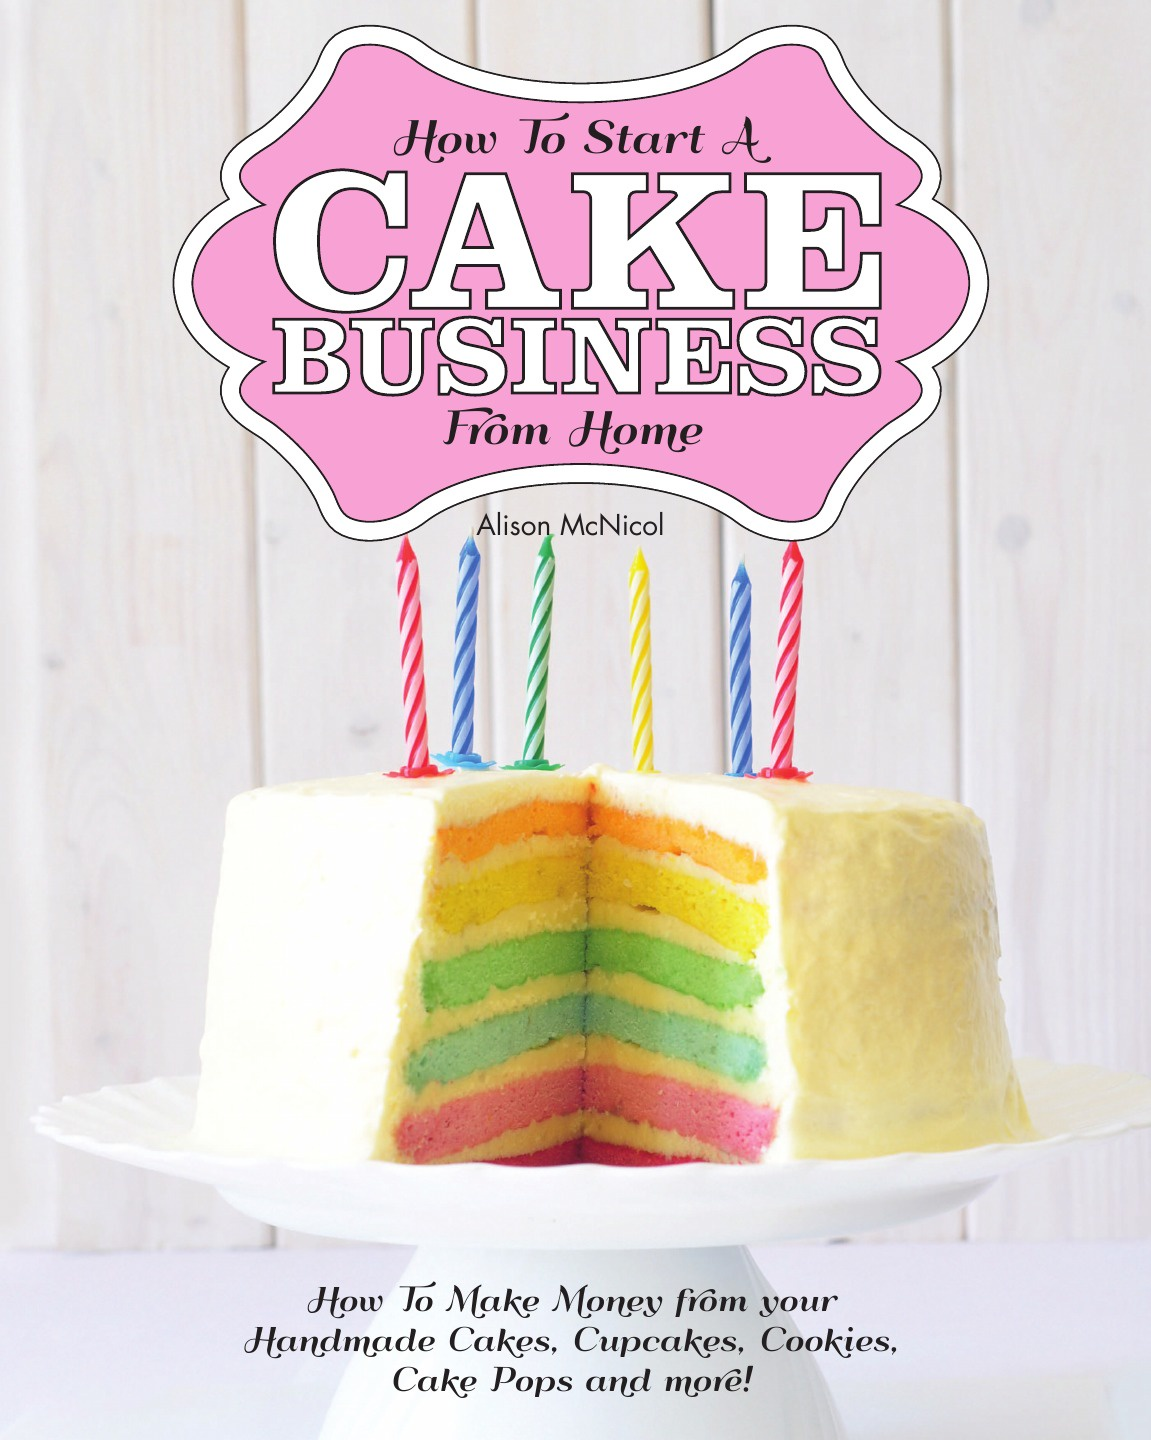 Alison McNicol How to Start a Cake Business from Home - How to Make Money from Your Handmade Cakes, Cupcakes, Cake Pops and More! carlye adler the power of positive destruction how to turn a business idea into a revolution